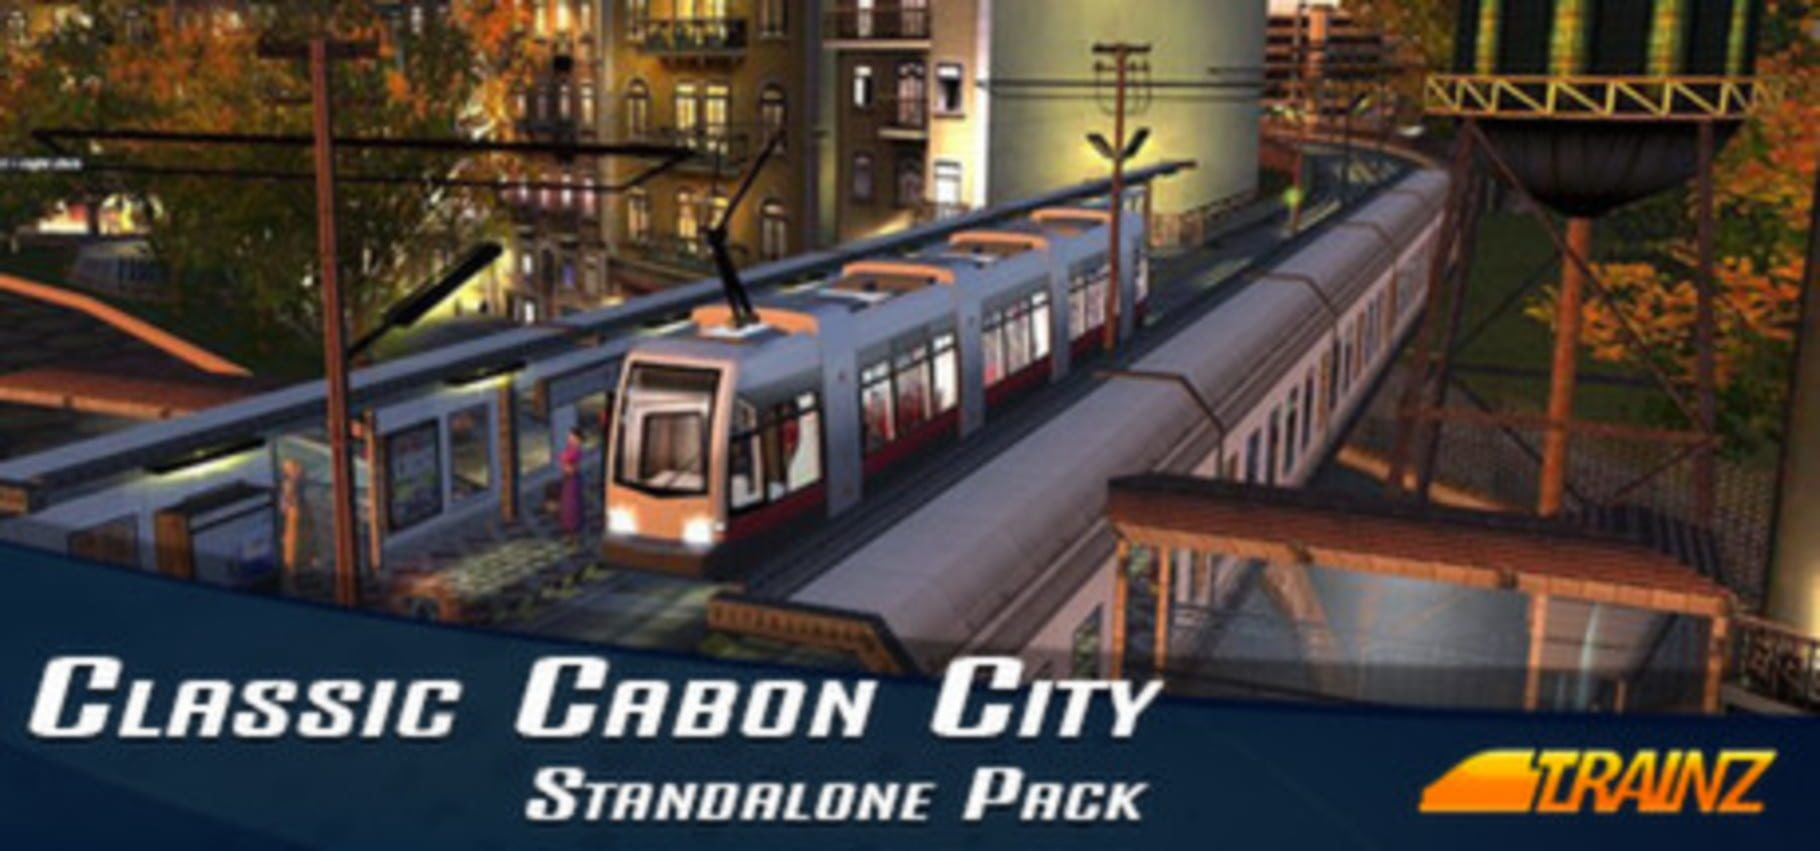 buy Trainz Simulator: Classic Cabon City cd key for all platform